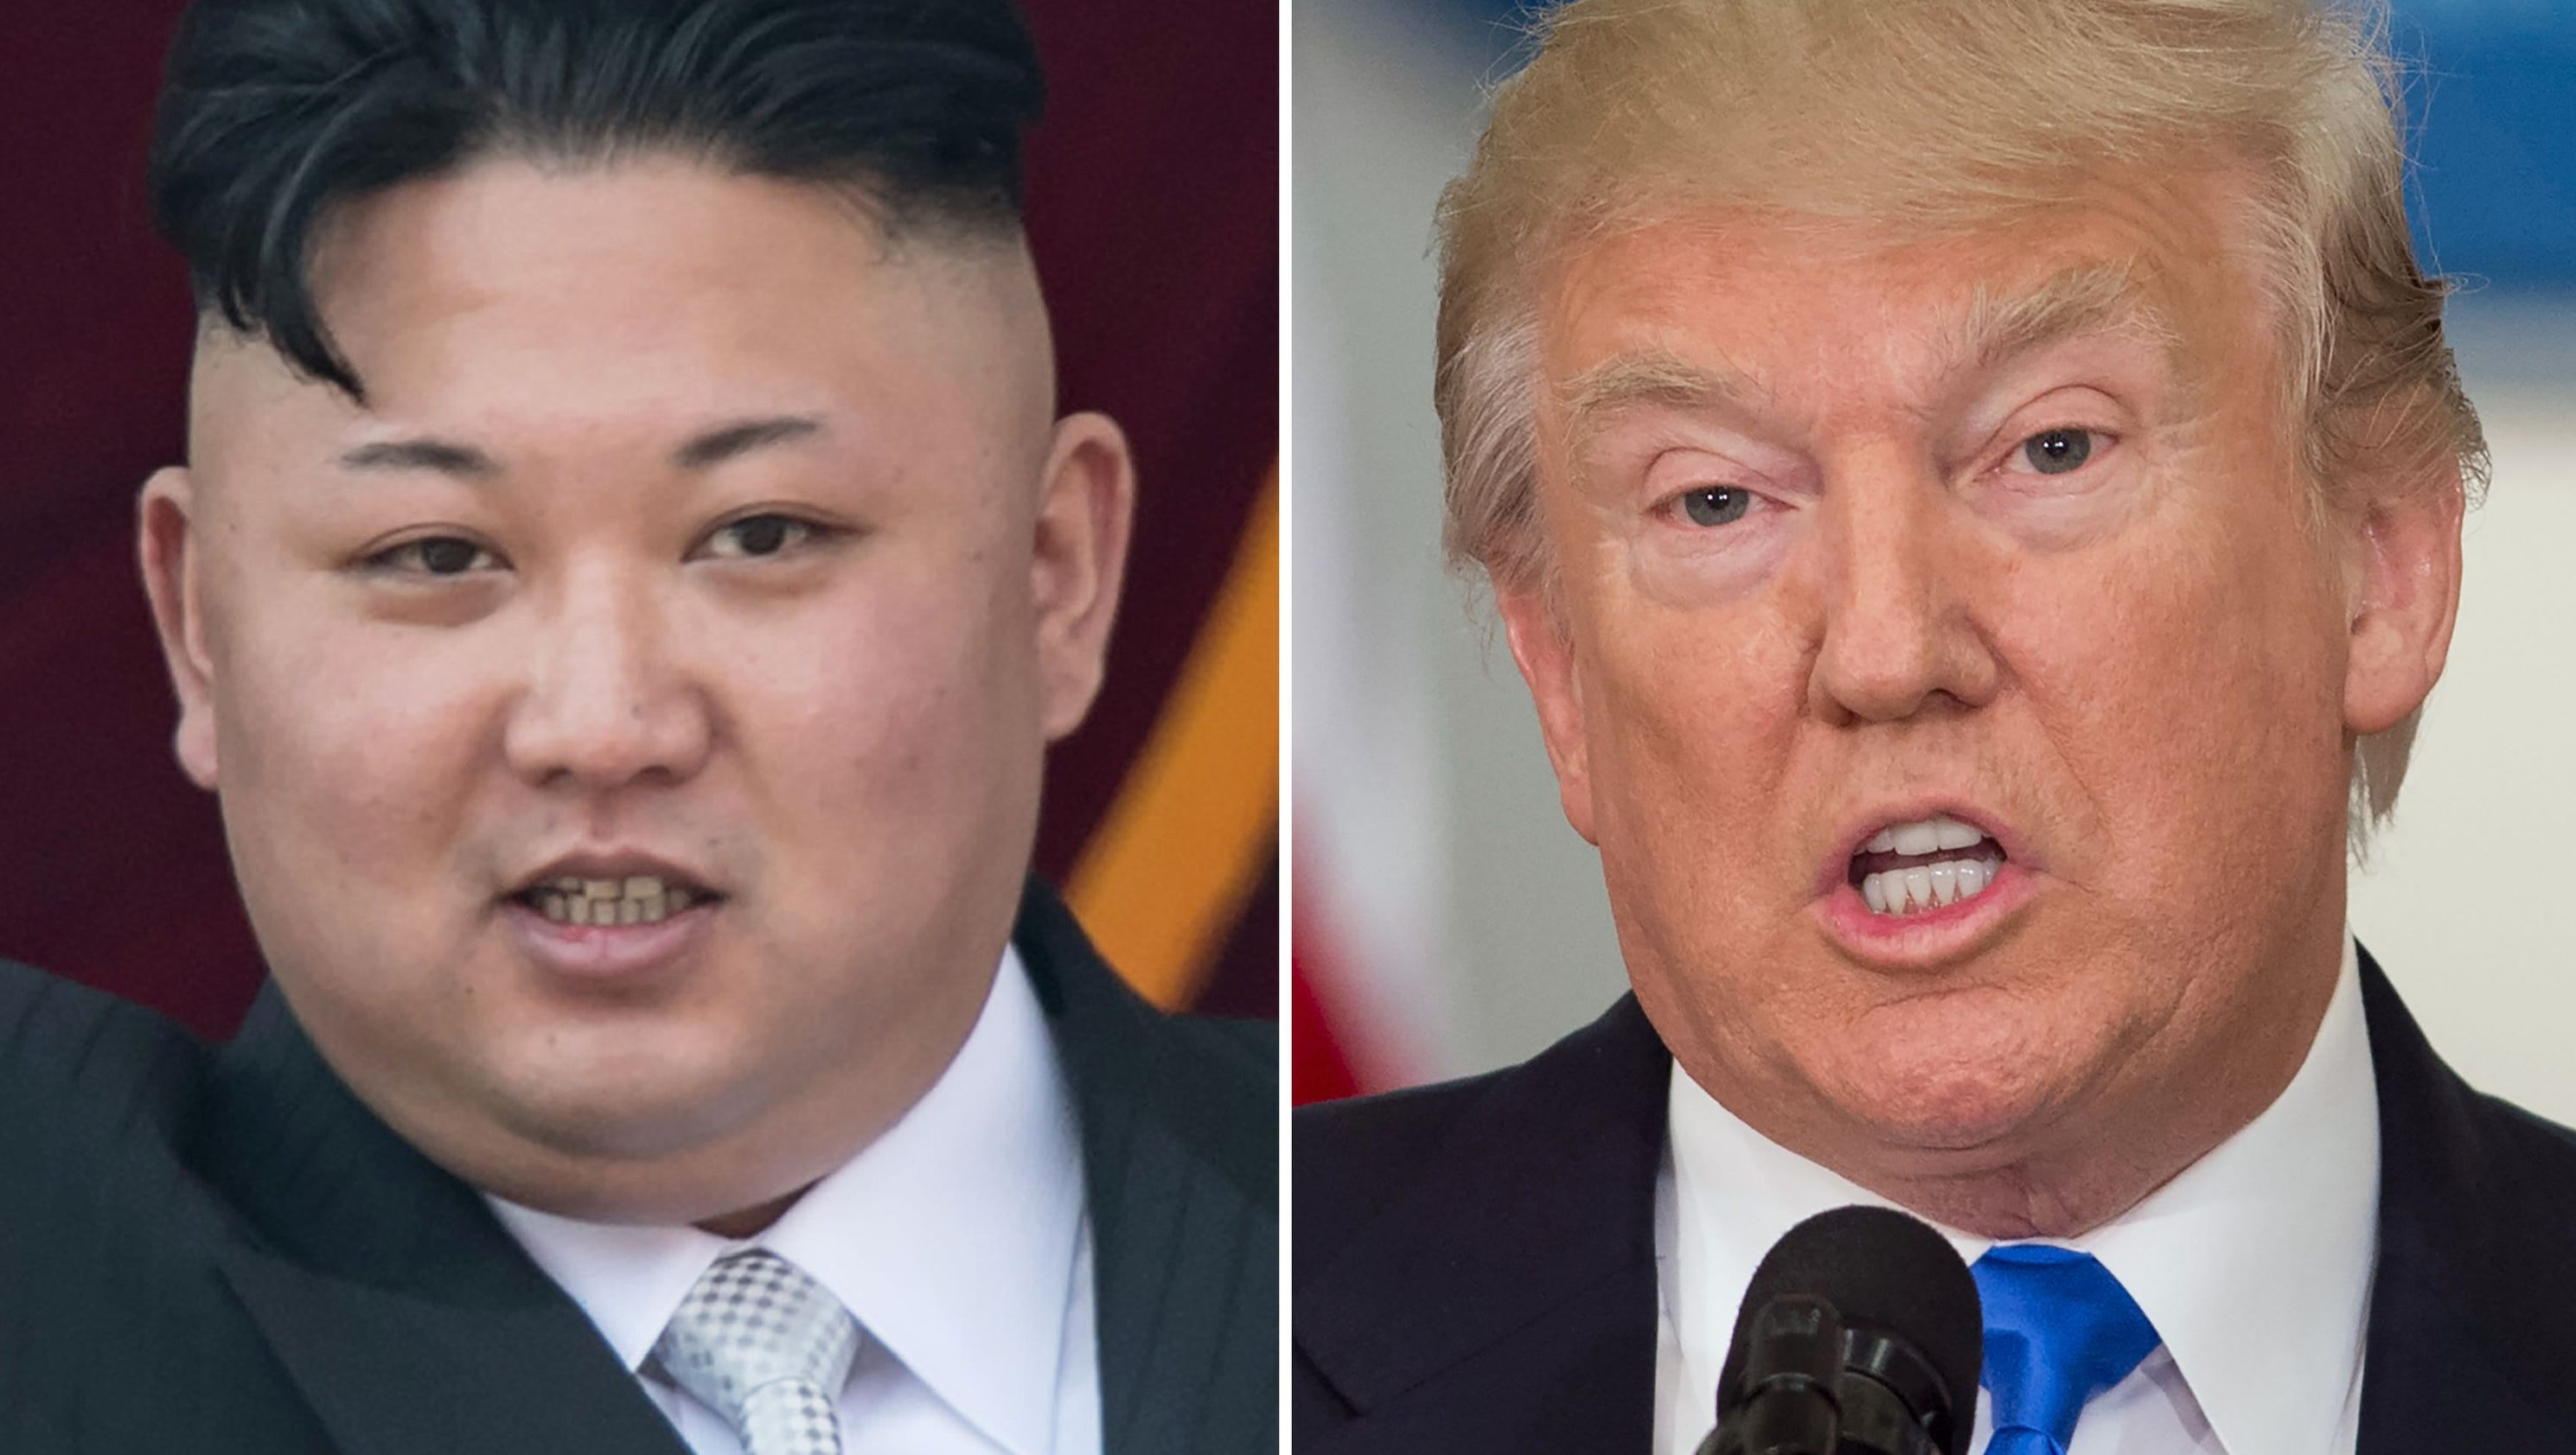 North Korea says it may test hydrogen bomb over Pacific Ocean